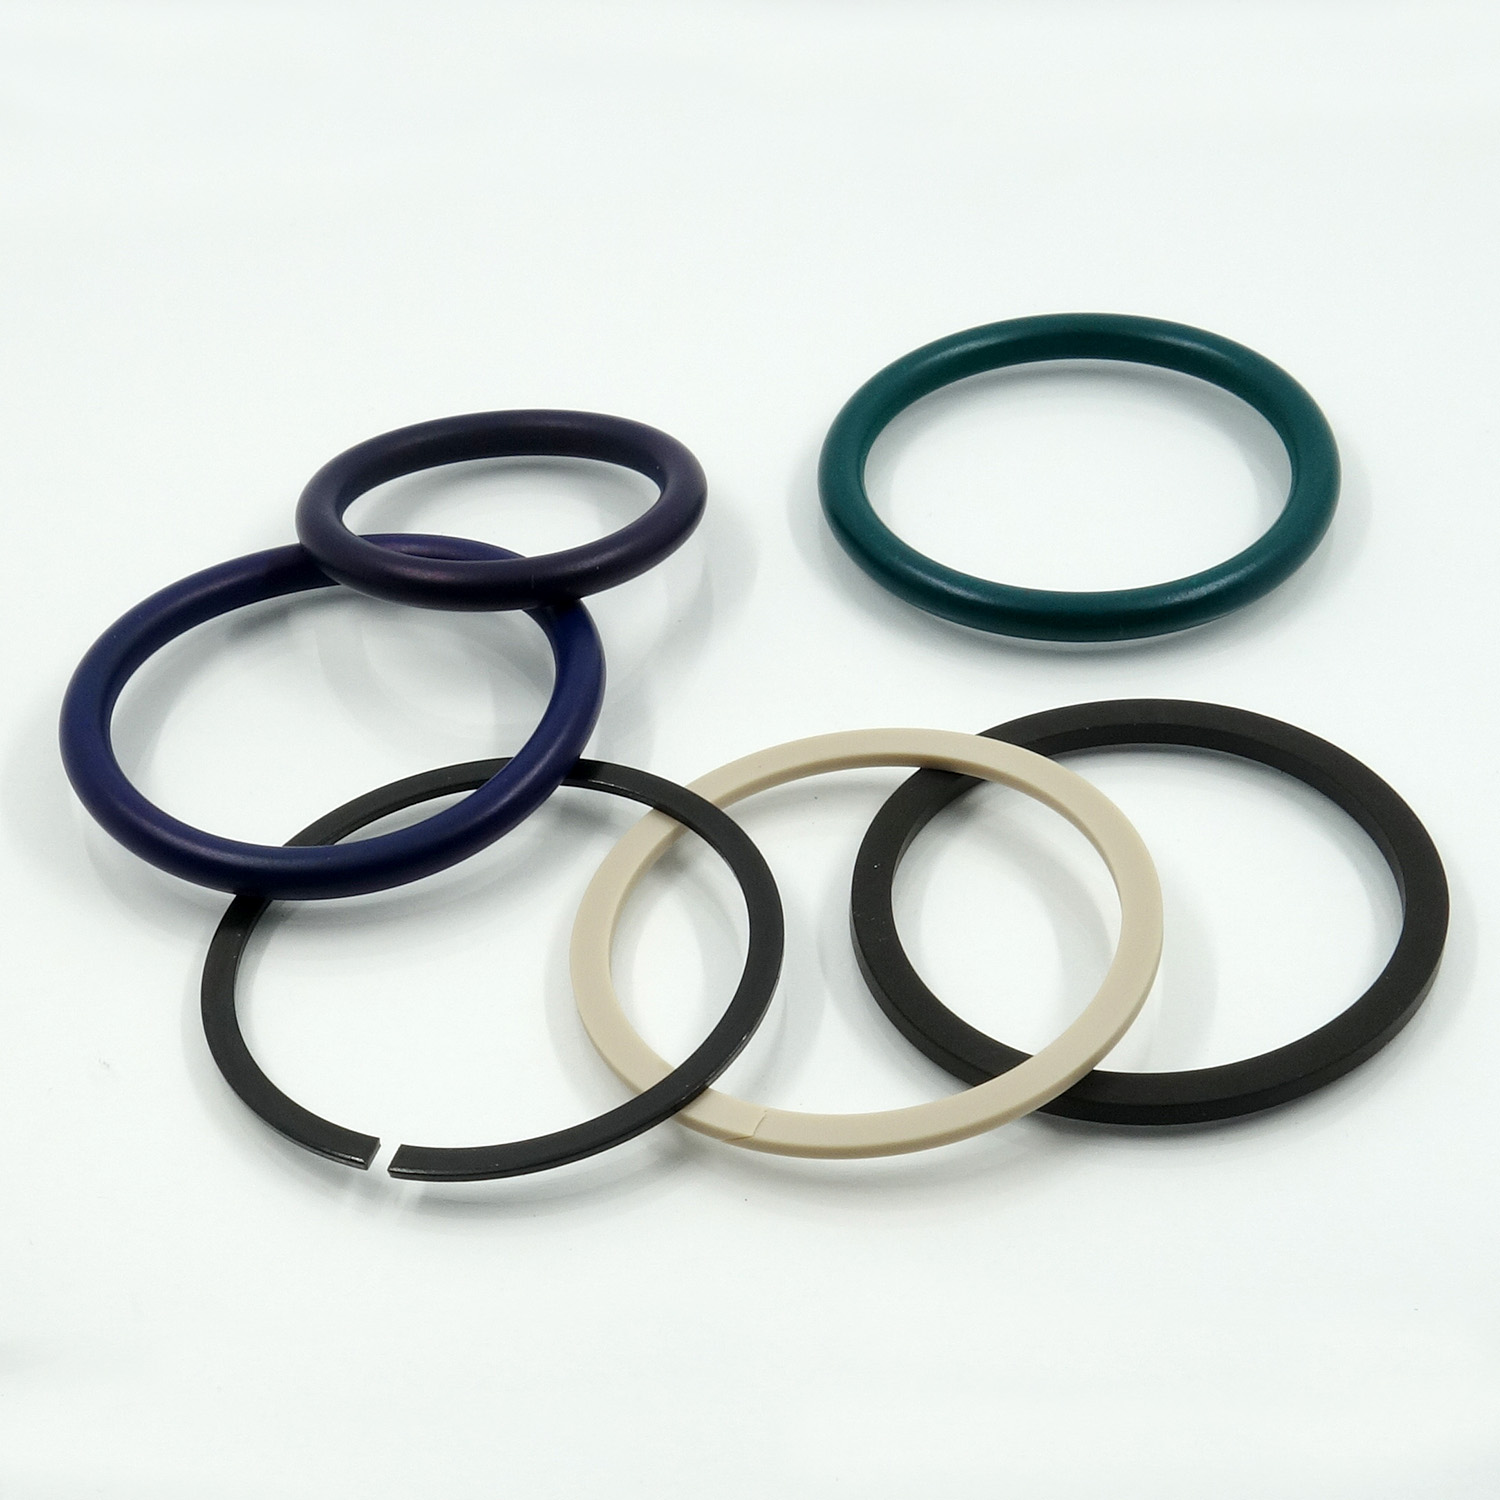 EXTERNAL GASKET KIT